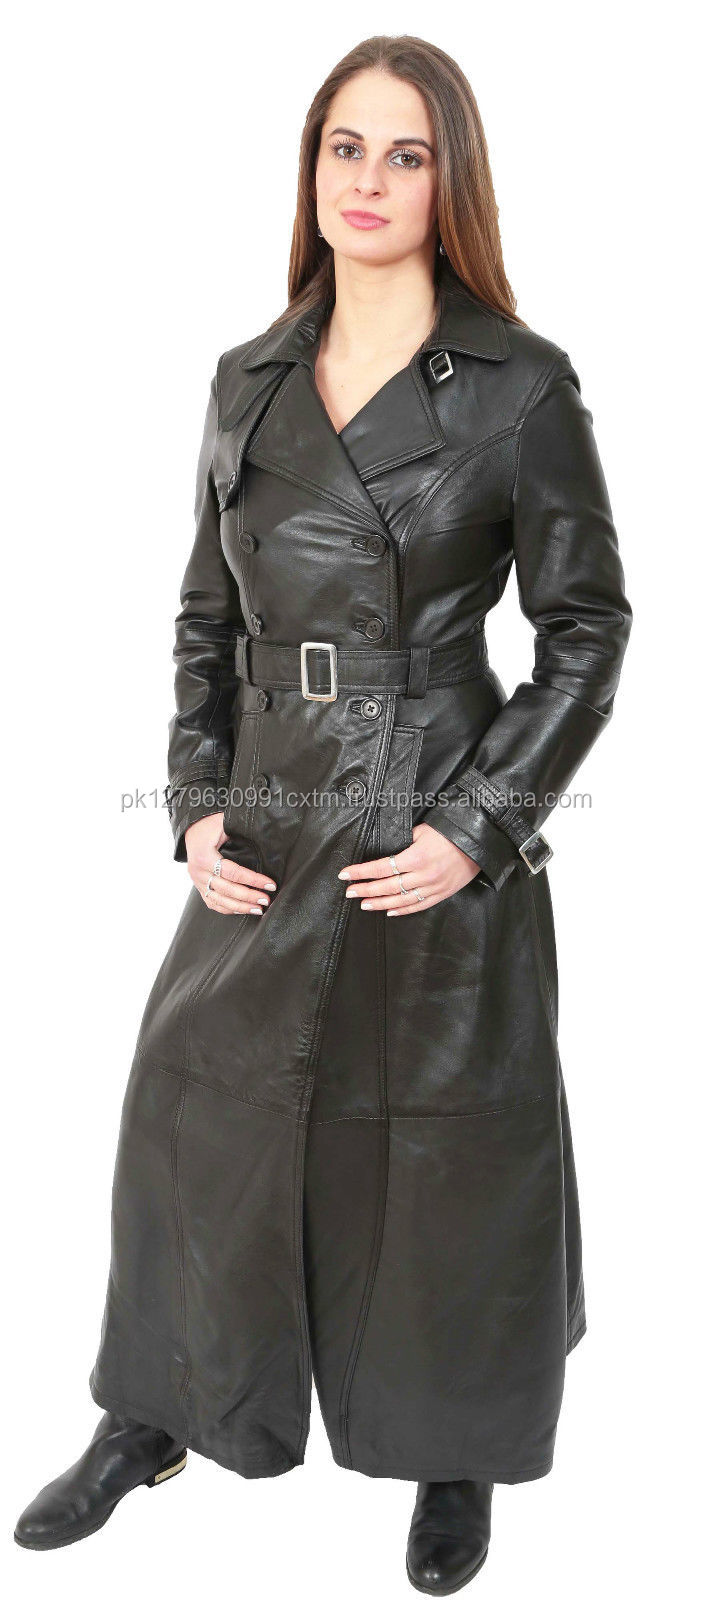 New Womens Long Black Leather Coat Liv Full Length Double Breasted Trench Jacket